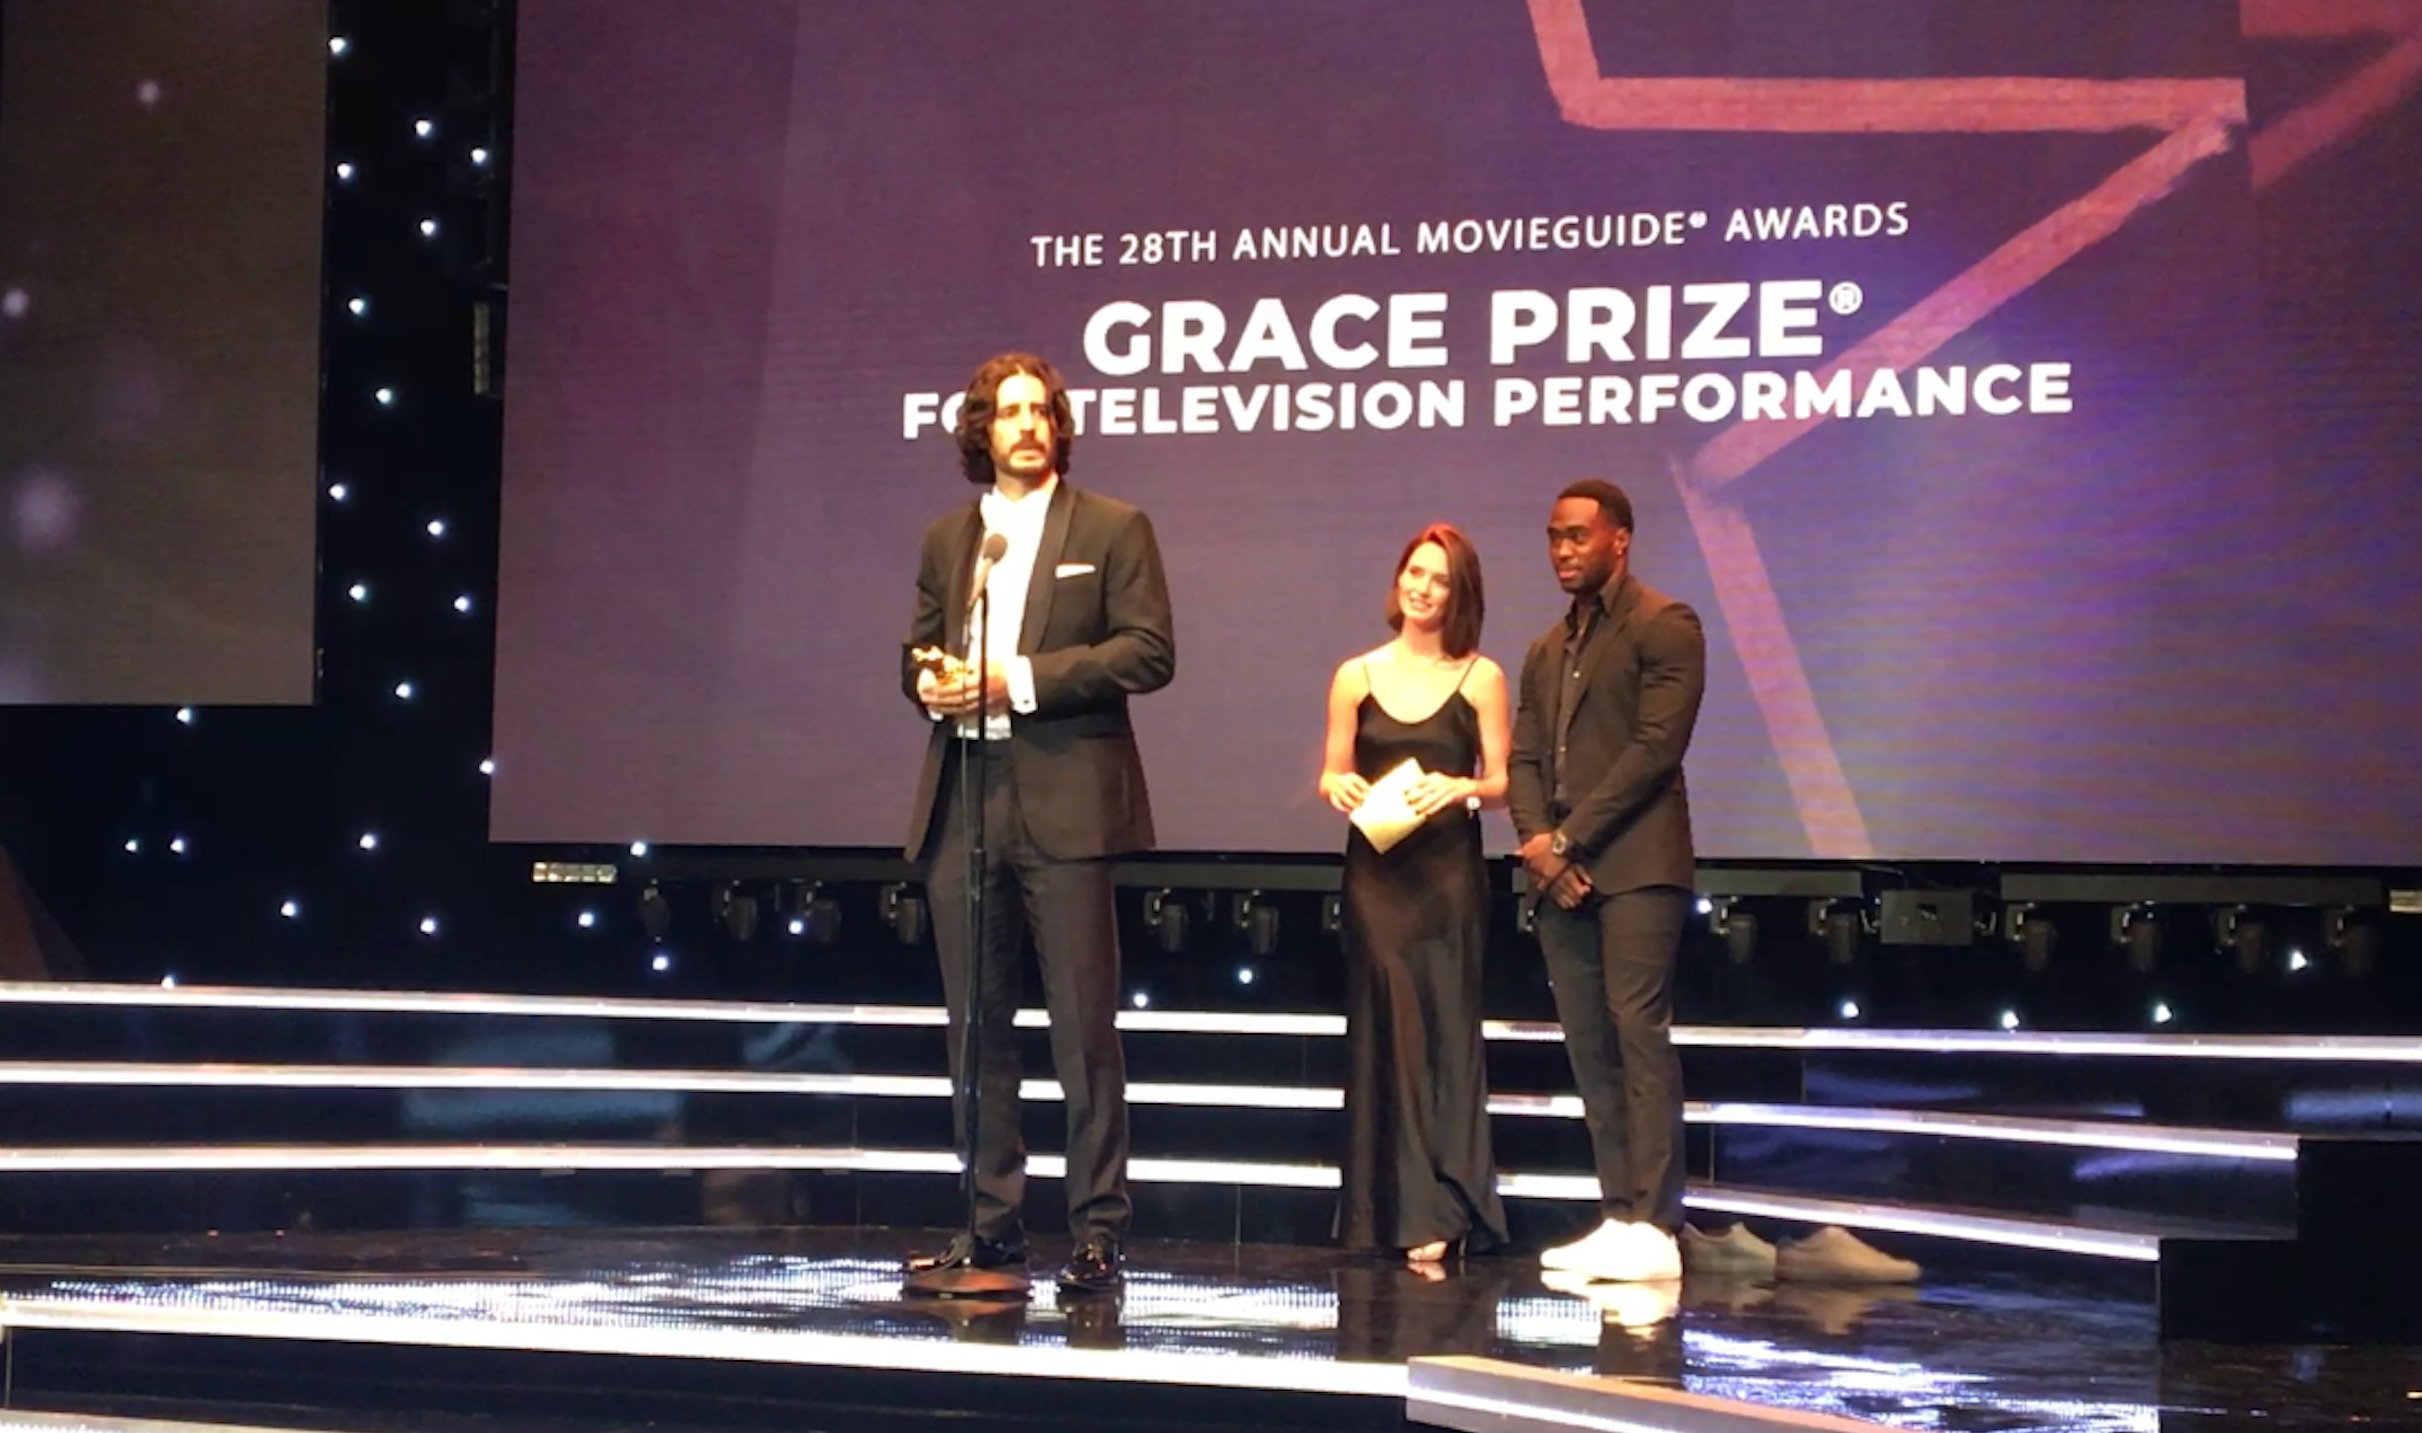 Receiving the 2020 Grace Prize for a Television Performance